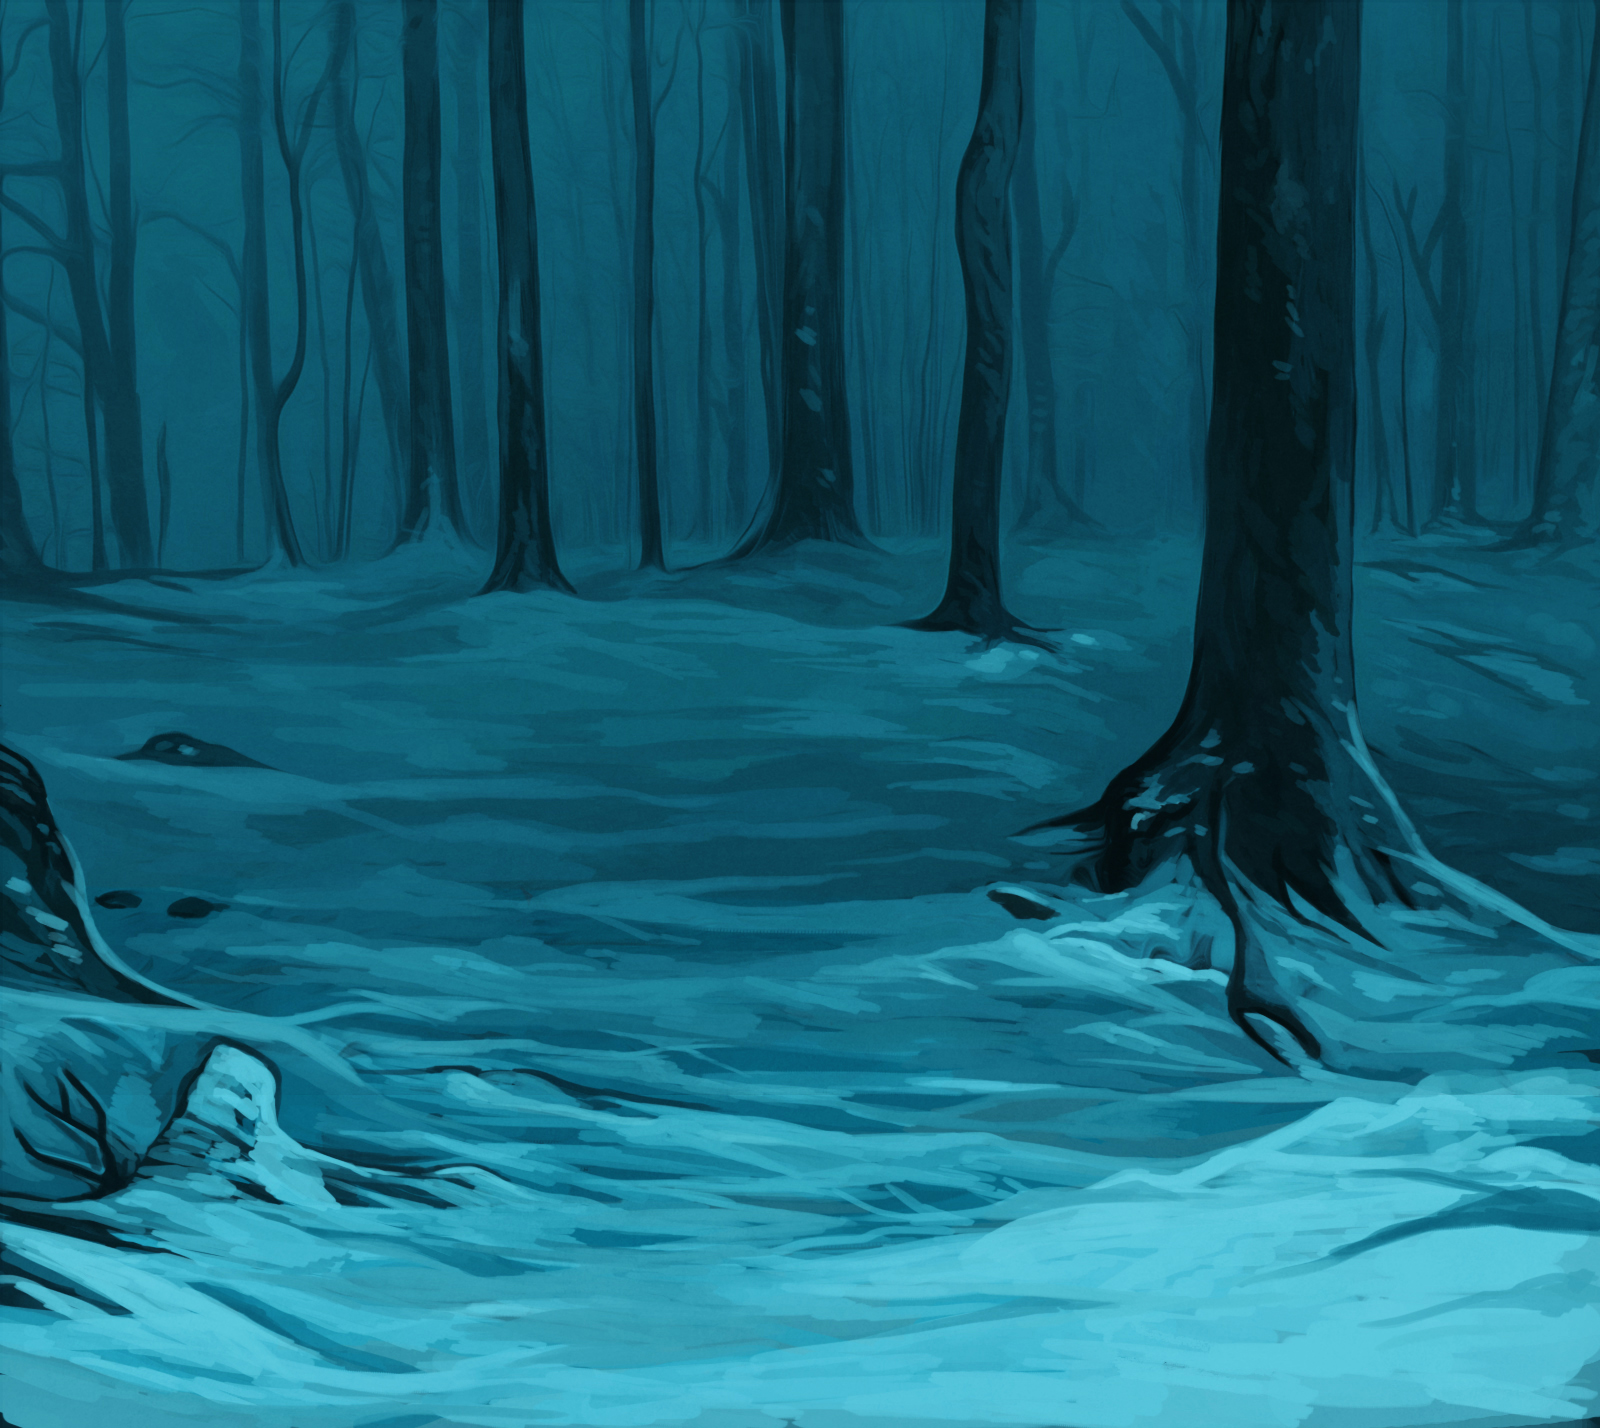 Forest by andrework